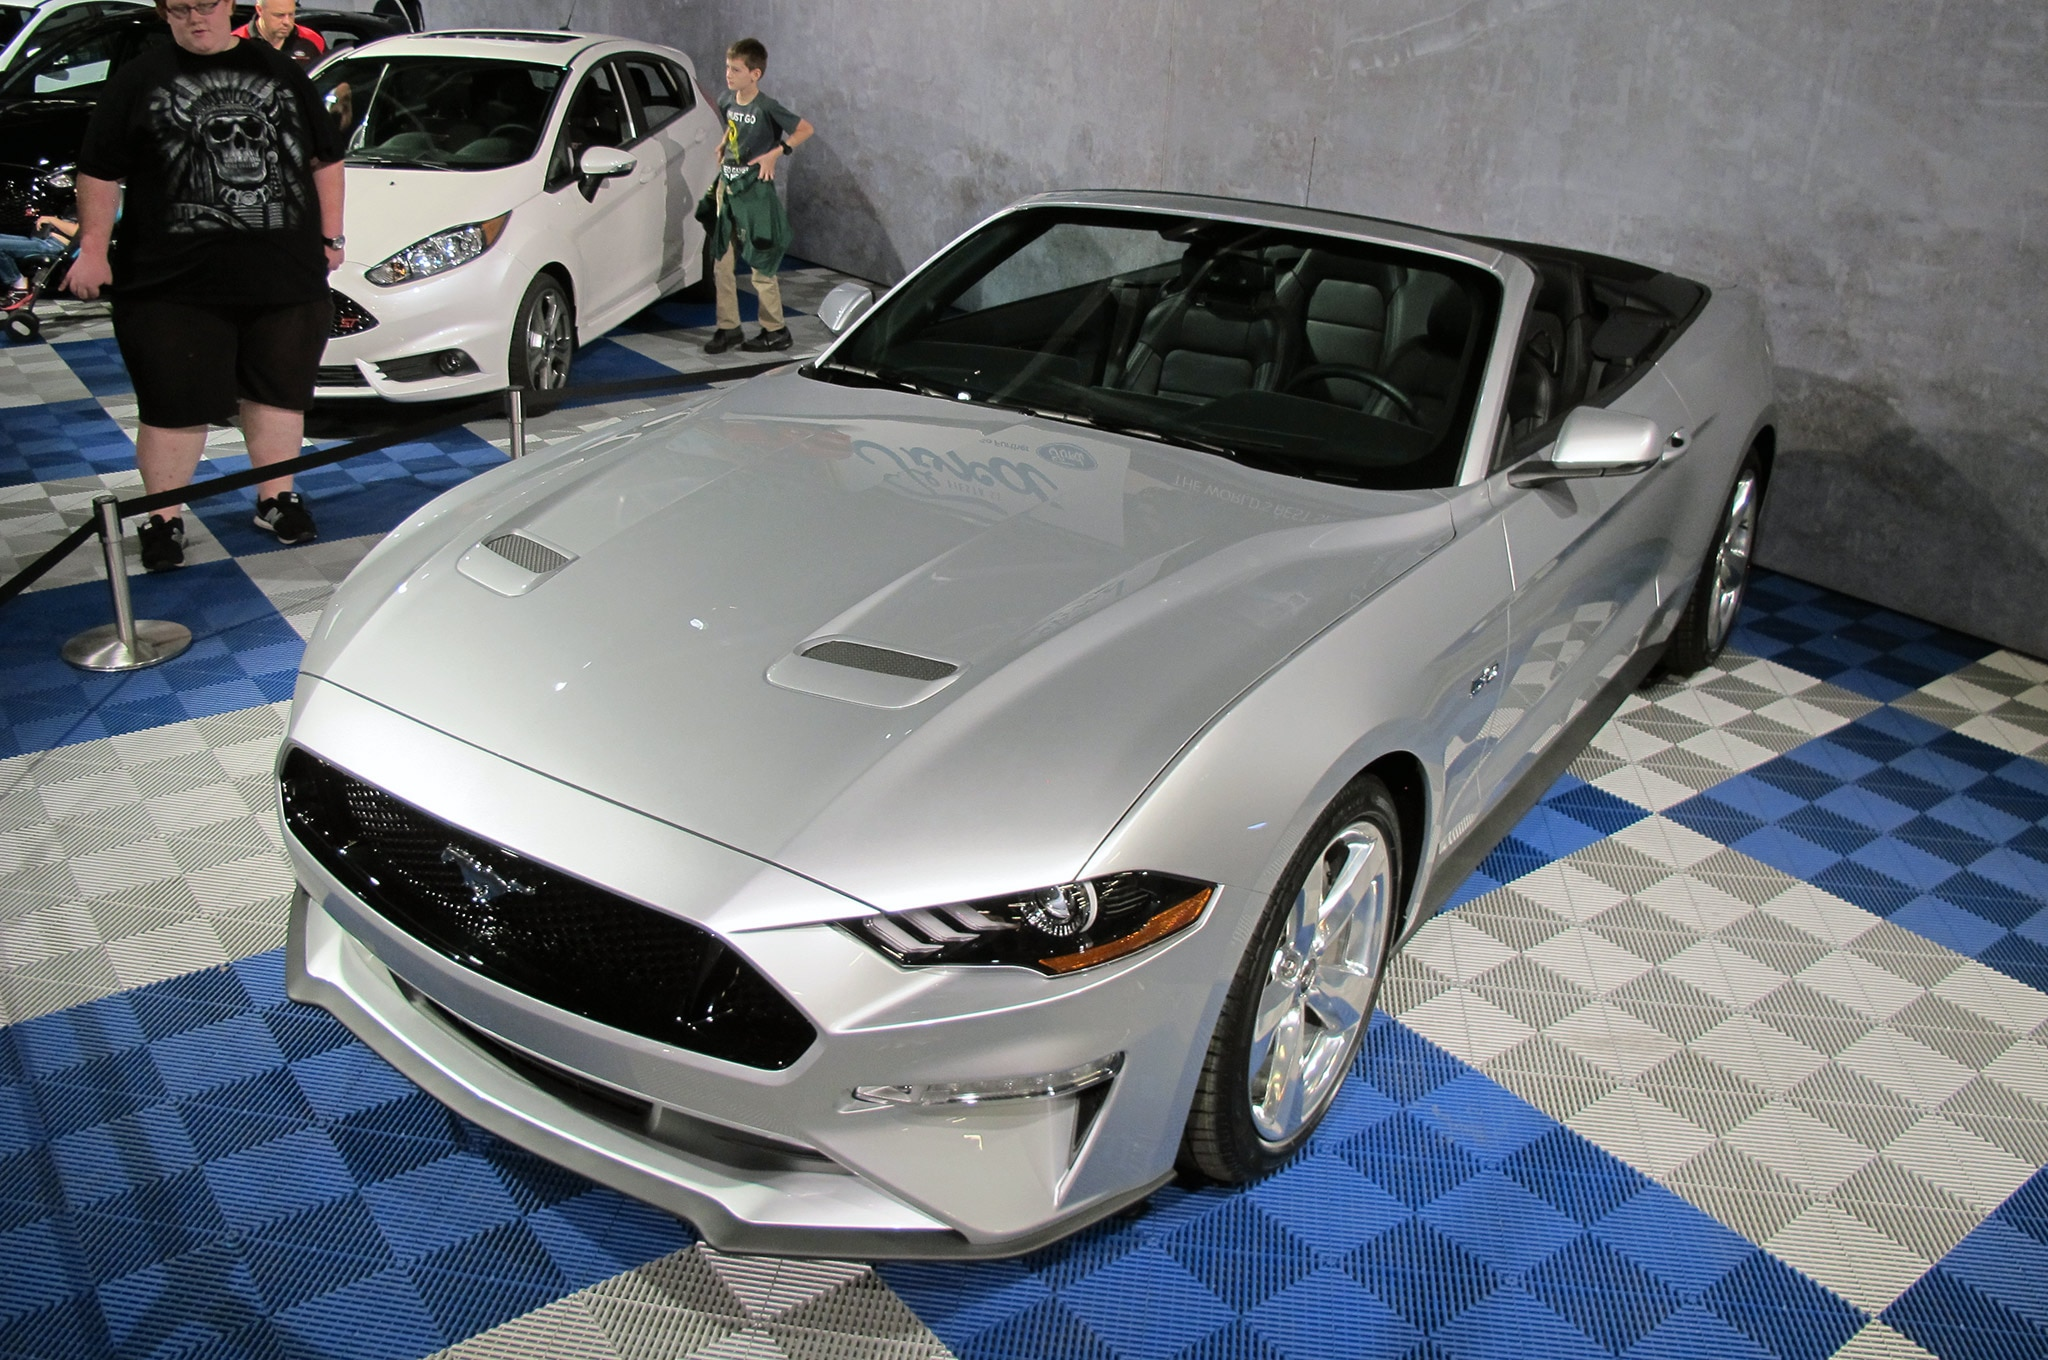 2018 Mustang Convertible Front Three Quarter 001